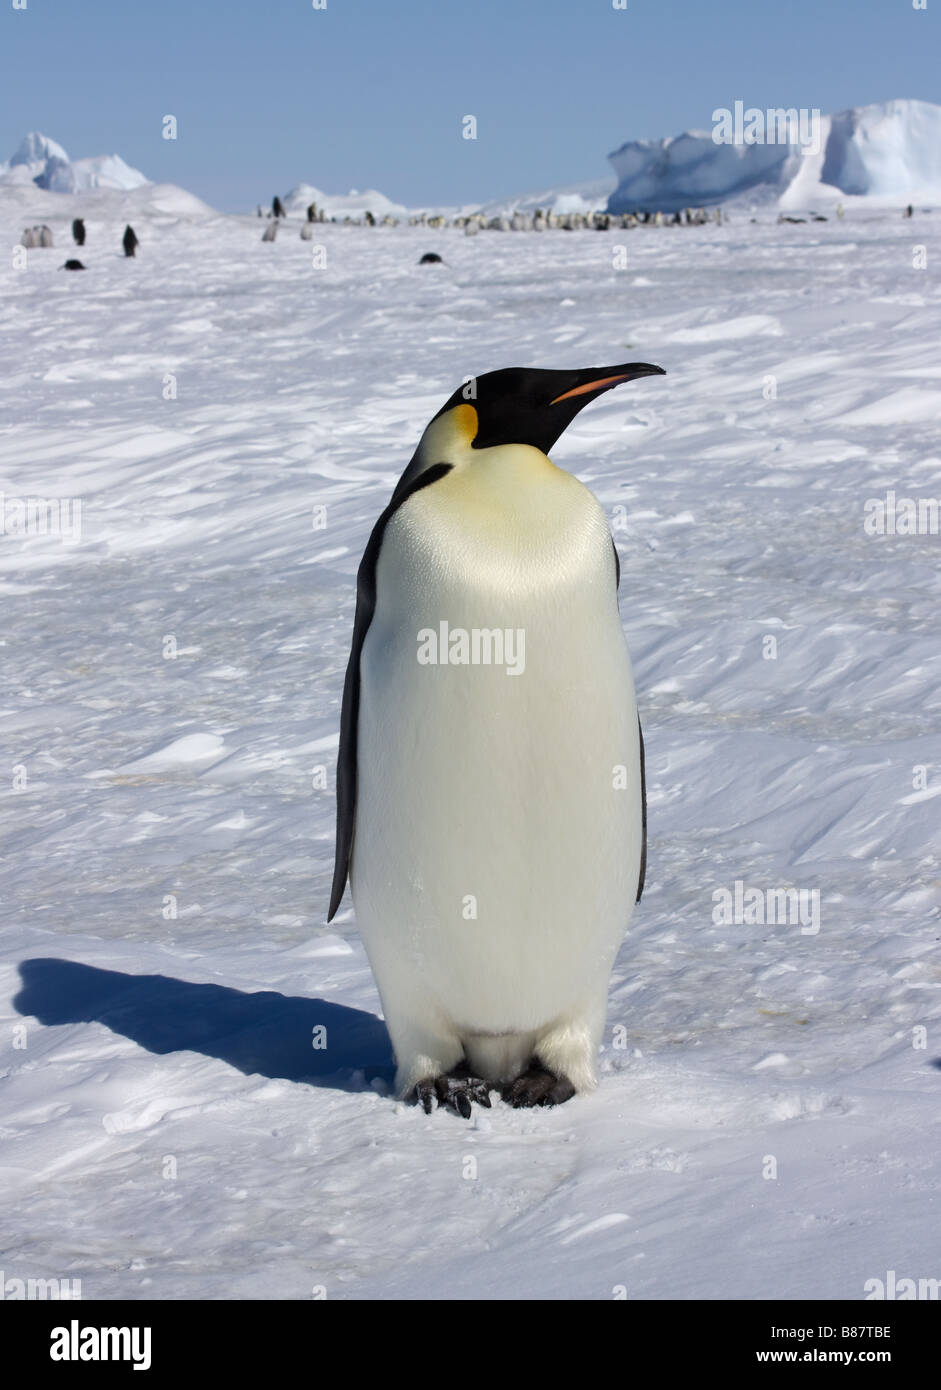 Emperor penguin en route to rookery at Snow Hill Island, Antarctica - Stock Image